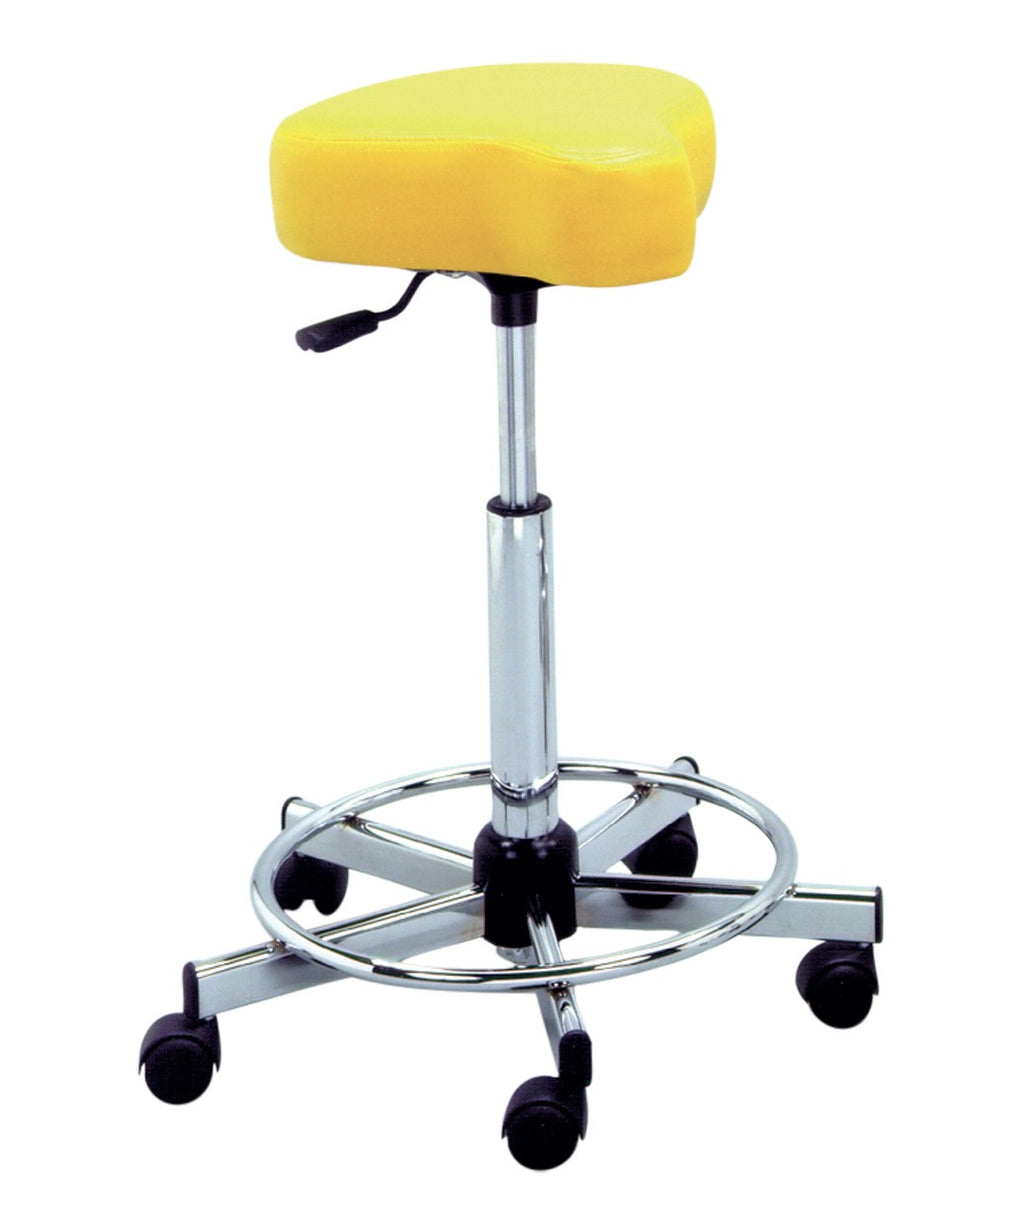 PIbbs Bike Seat Stylist Cutting Stool